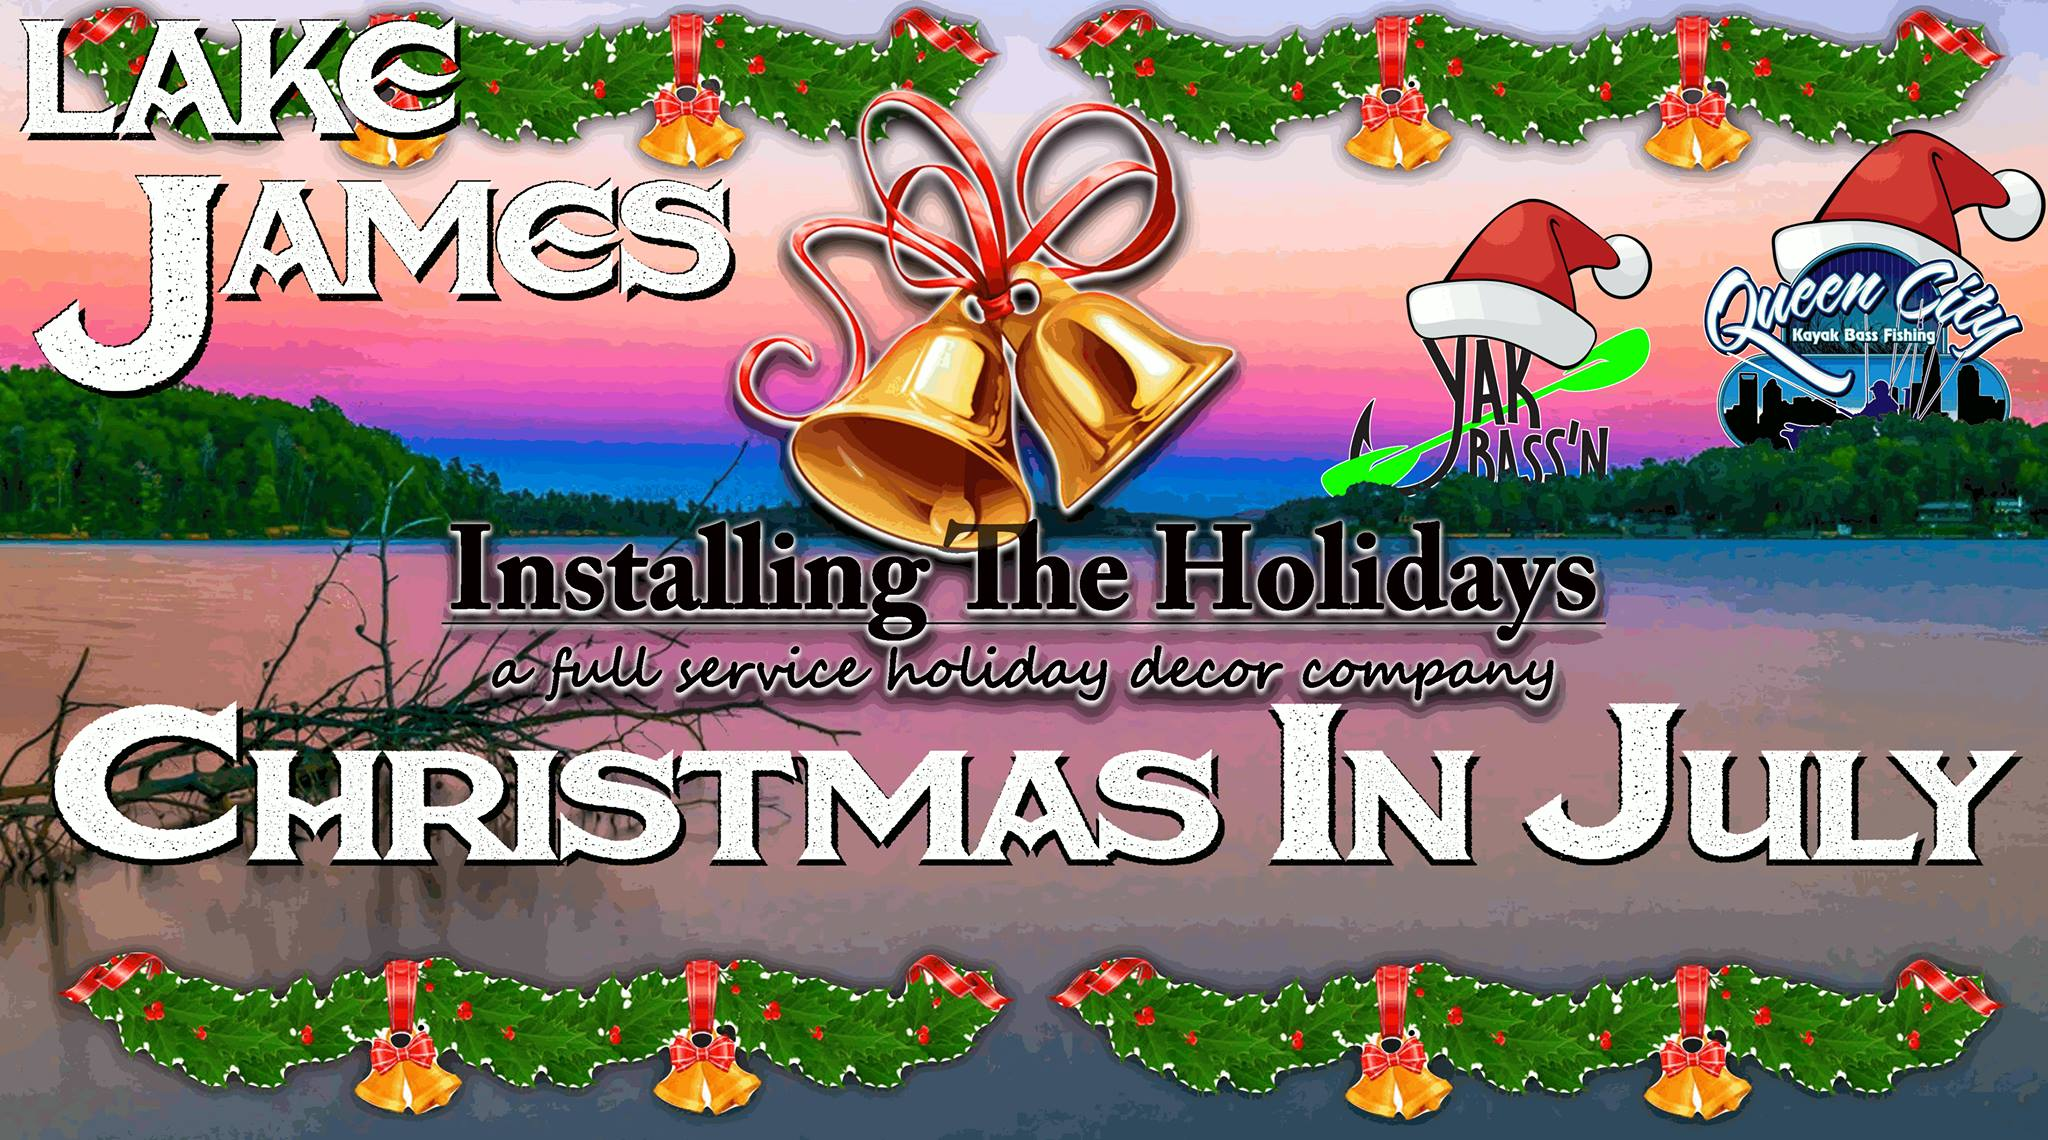 QCKBF Event 6: Lake James presented by Installing the Holidays